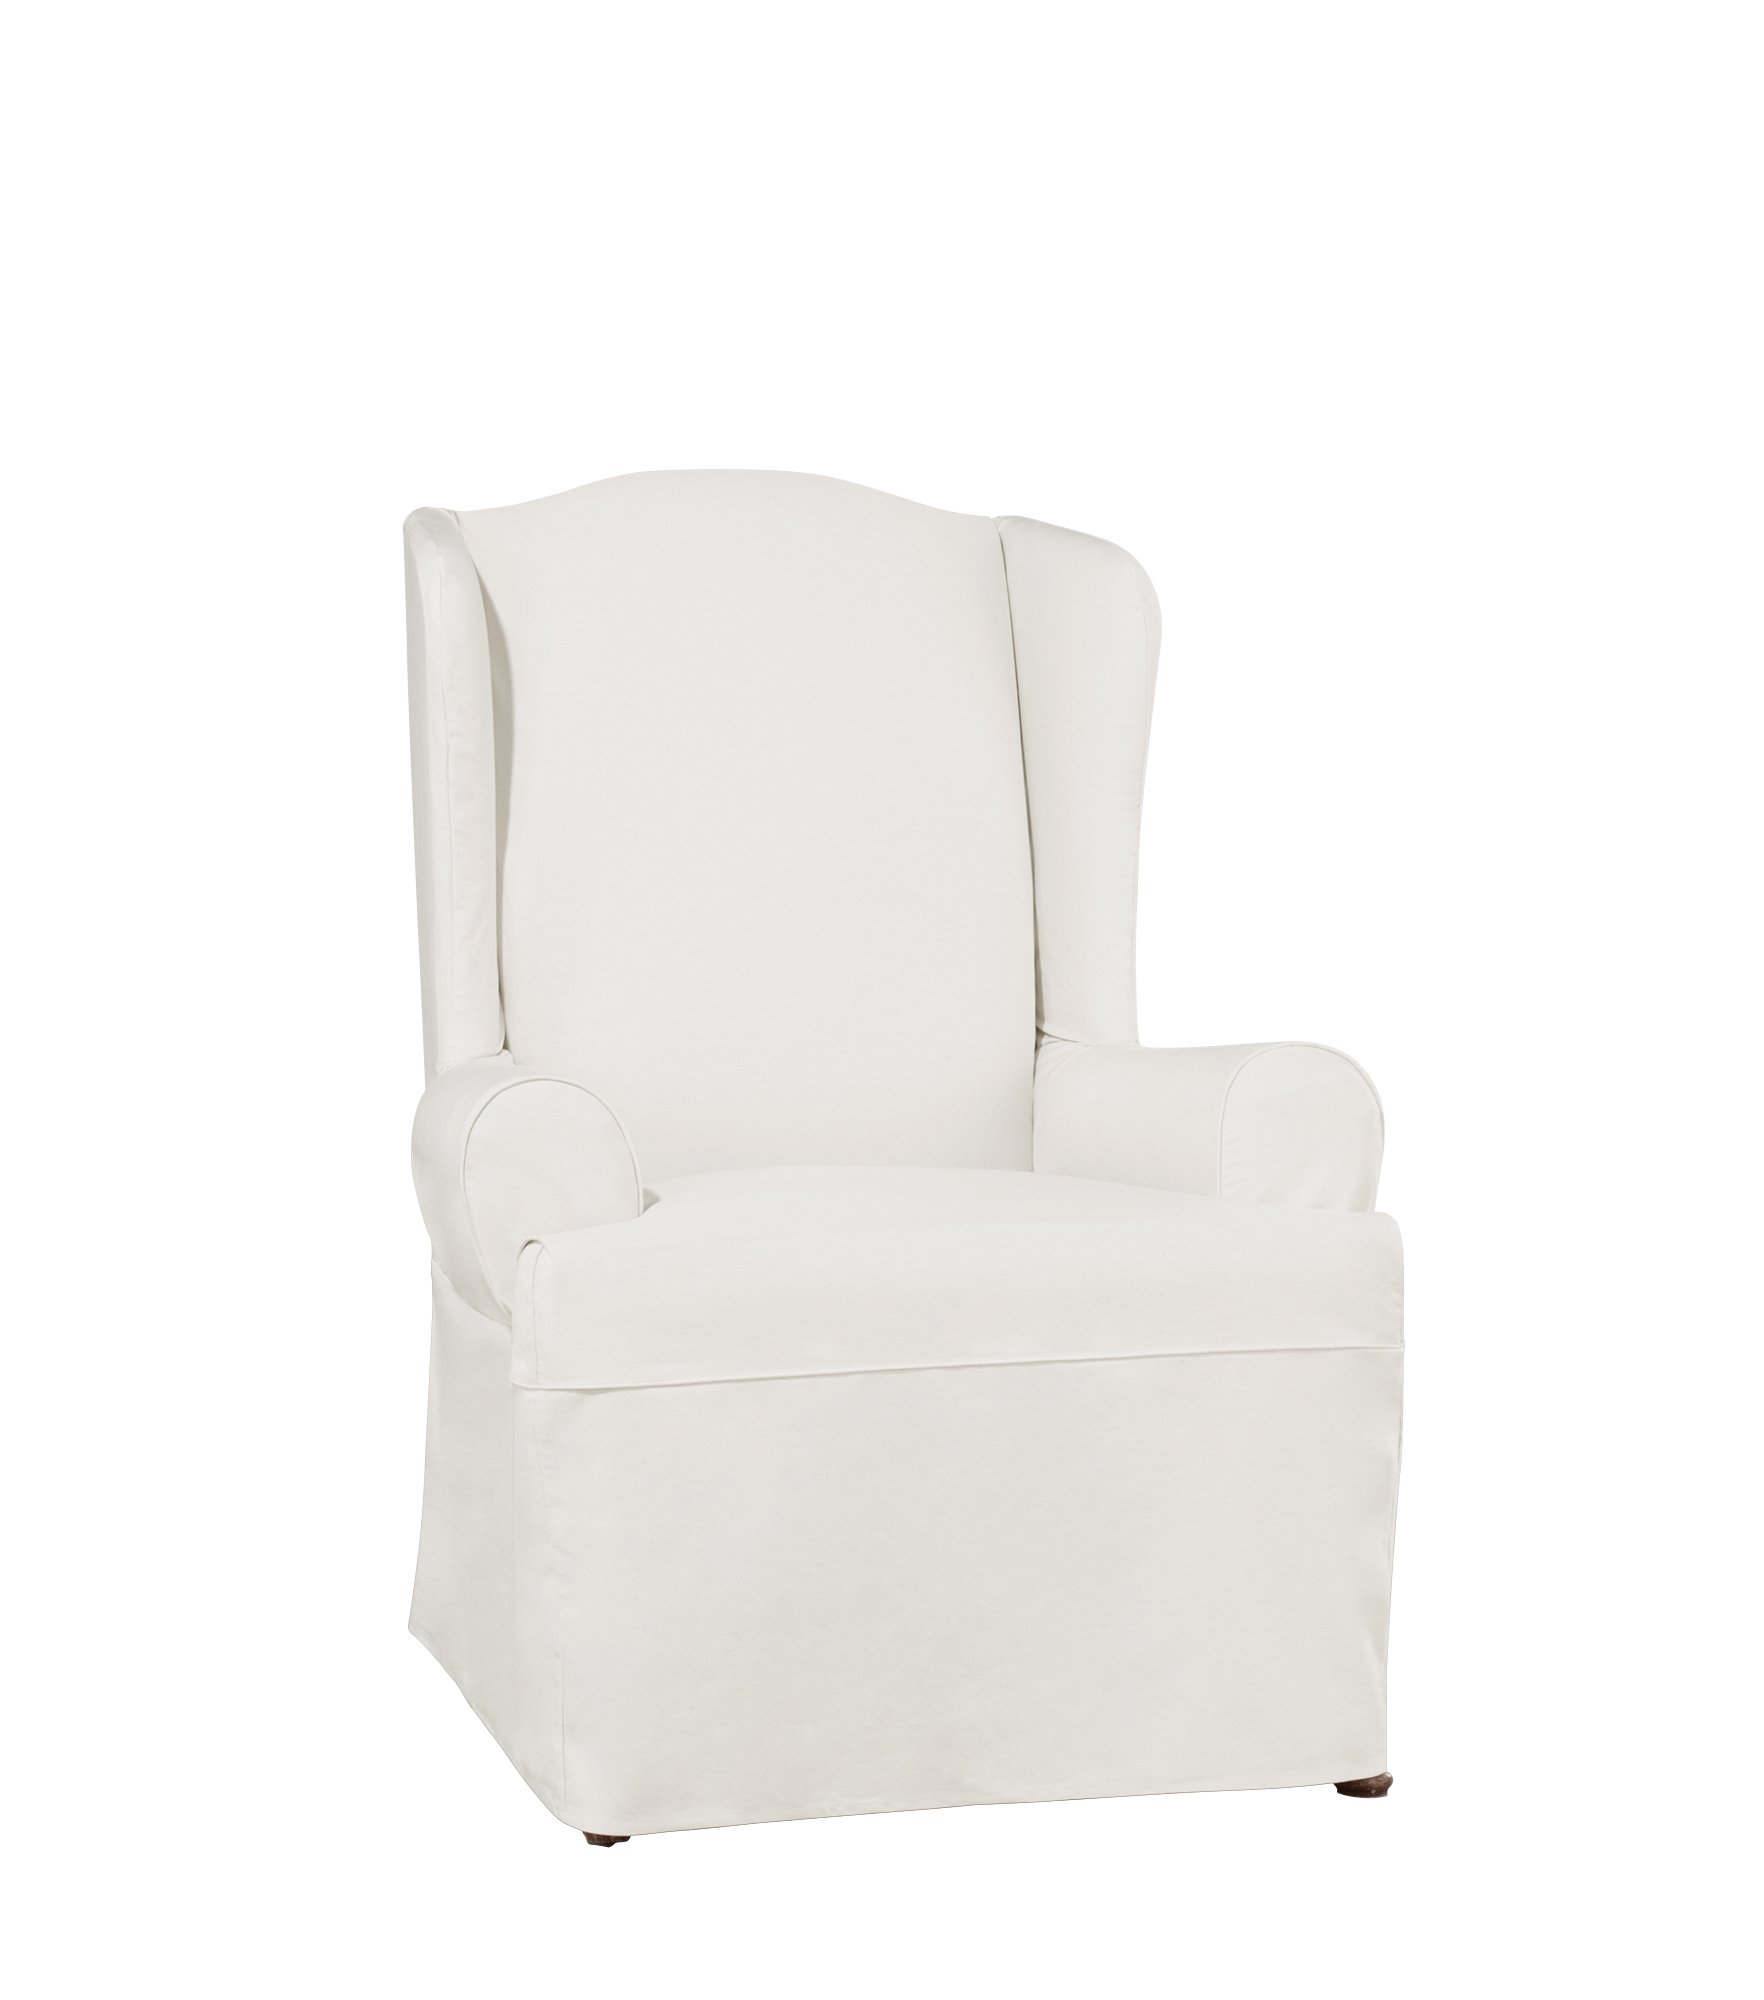 Sure Fit Essential Twill Straight Skirt Wing Chair Slipcover with Scotchgard - White